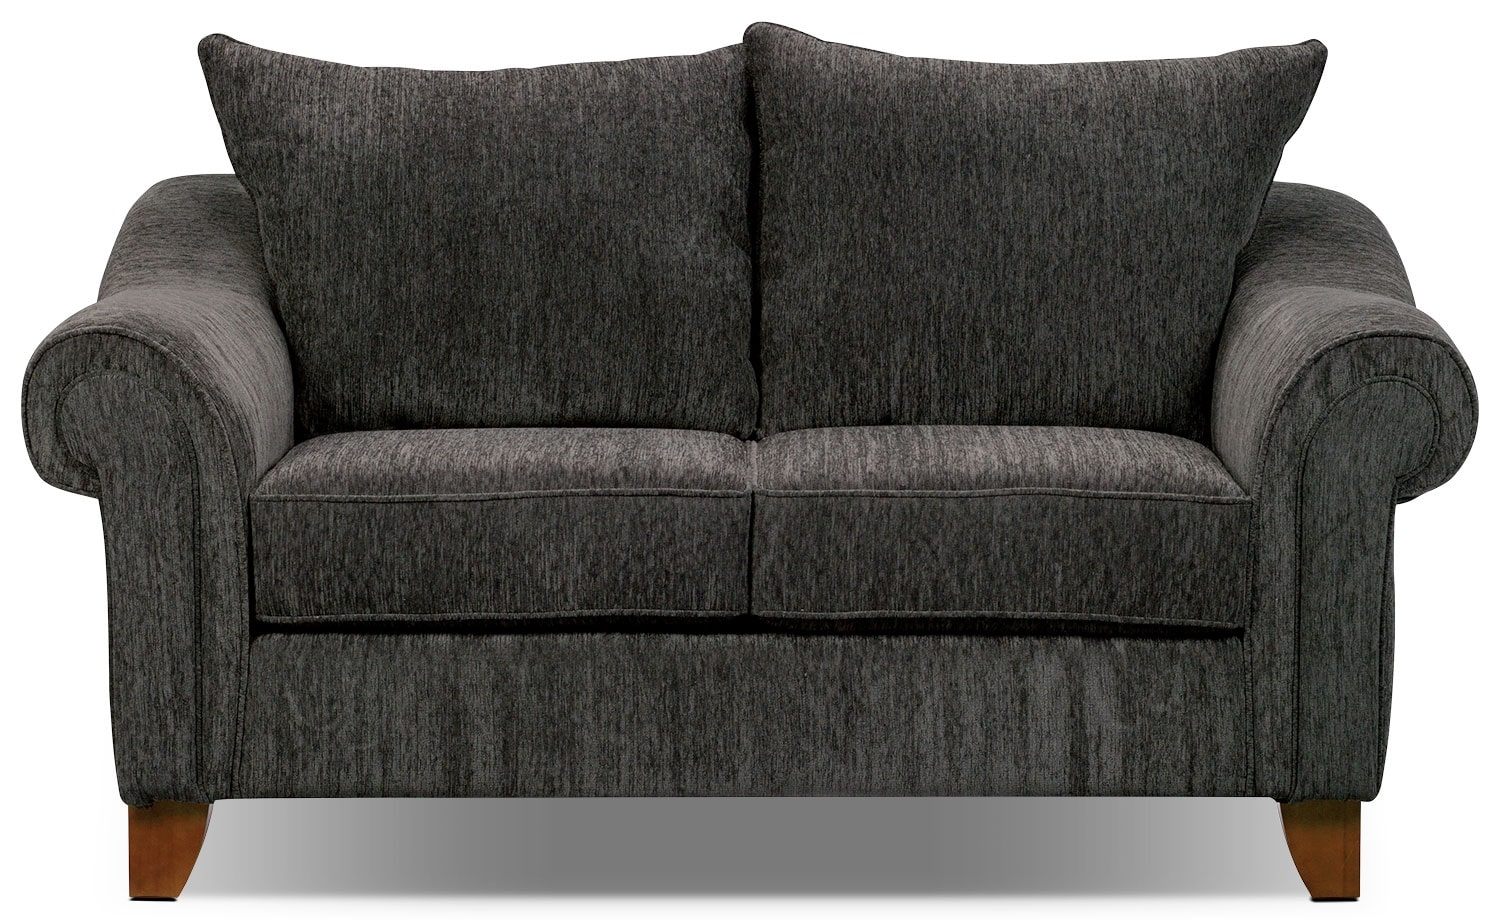 Reese chenille queen sofa bed dark grey the brick Chenille sofa and loveseat